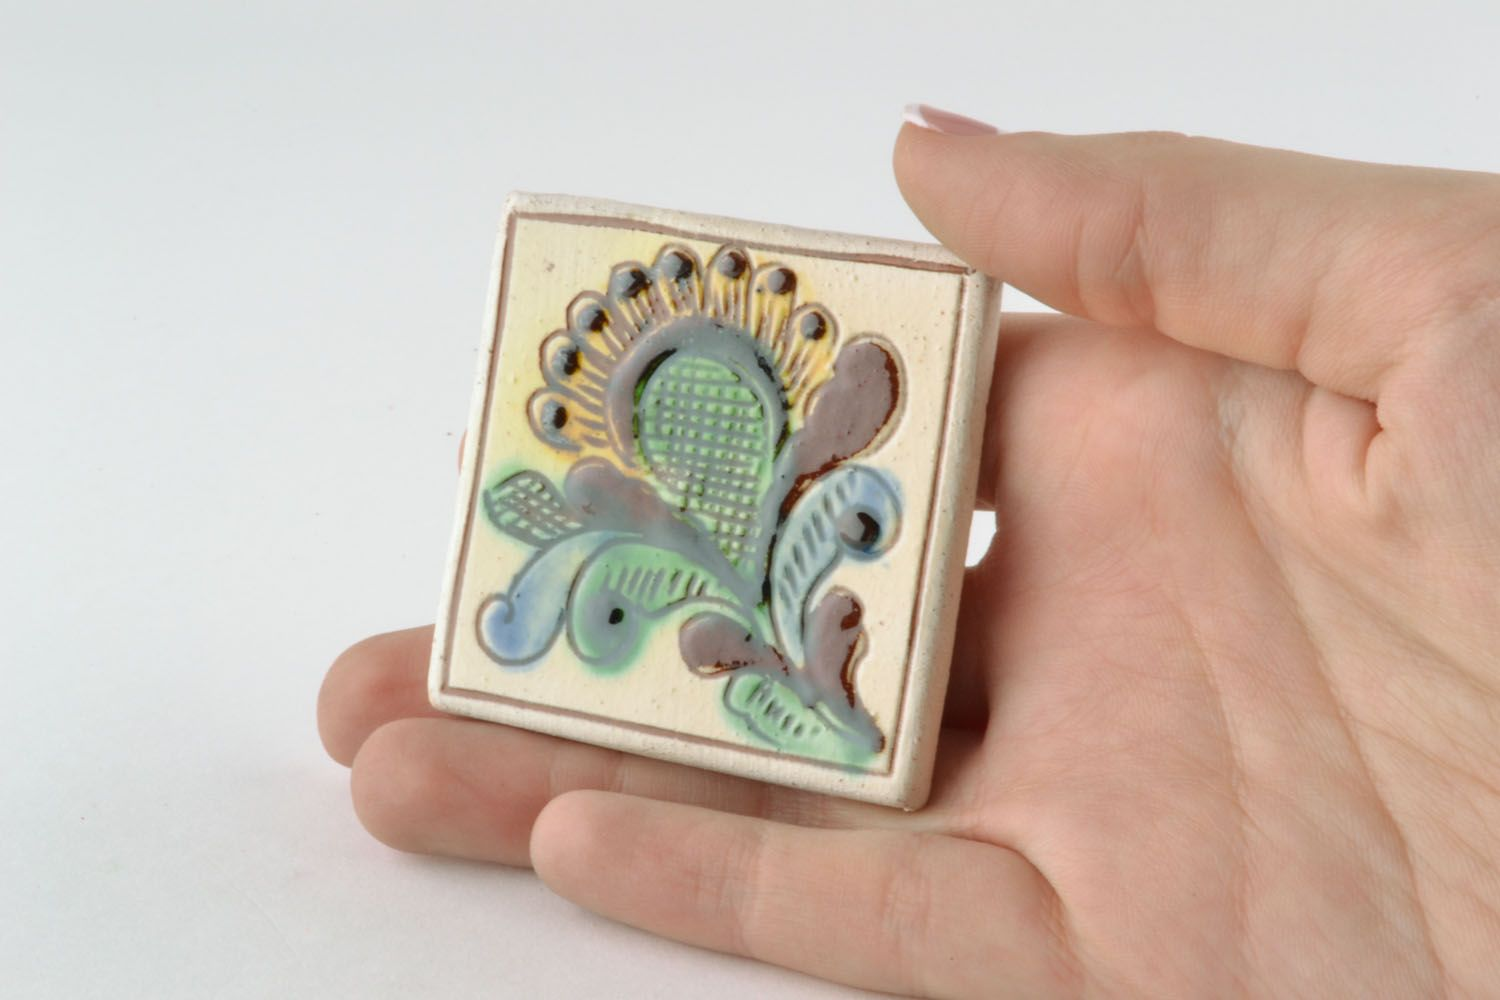 Ceramic fridge magnet photo 2